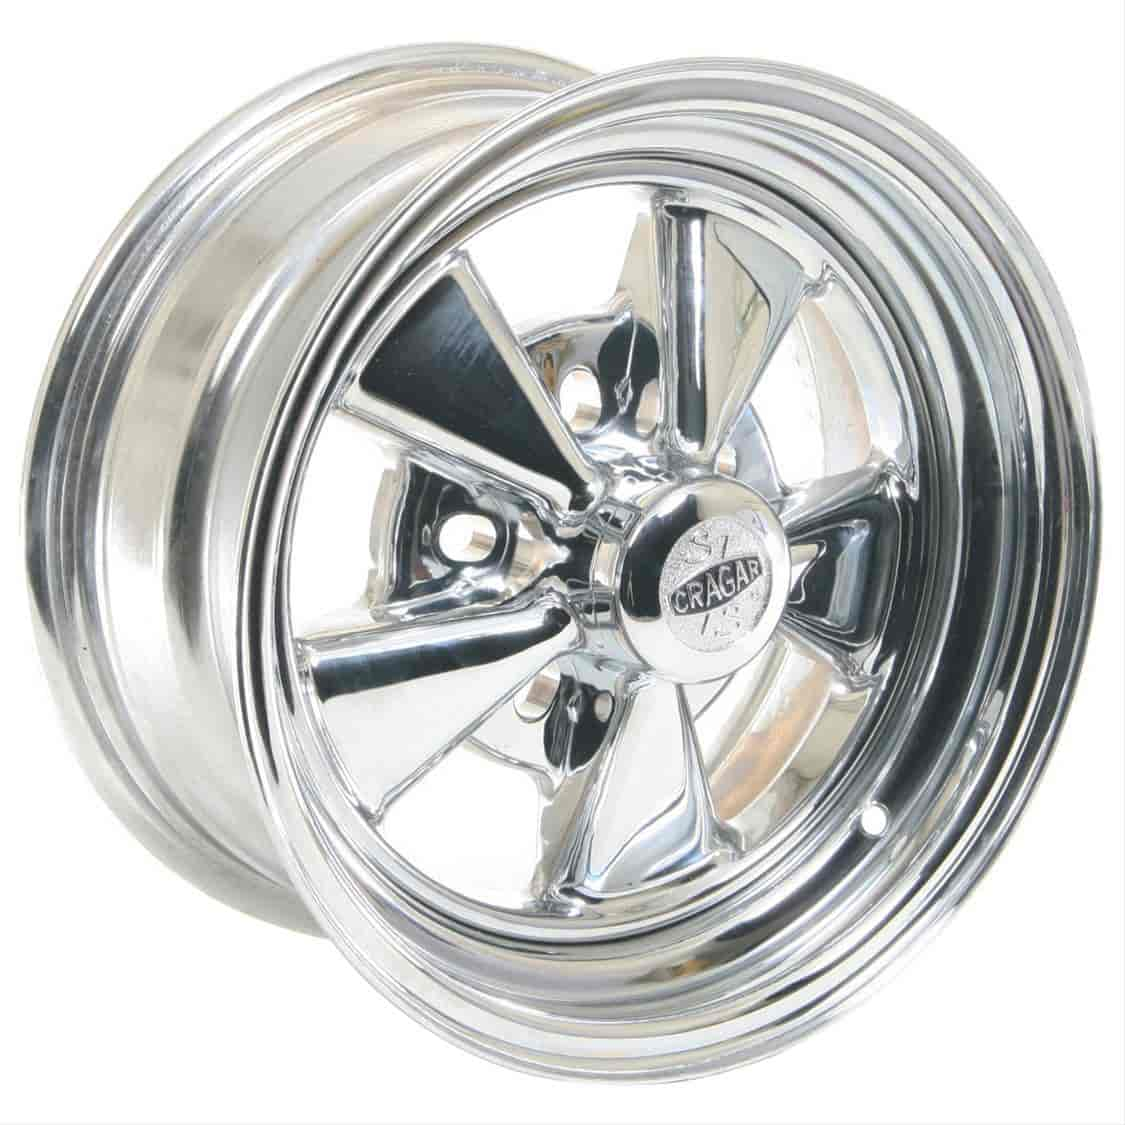 Cragar 08765 - Cragar 08/61 Series S/S Super Sport Wheels